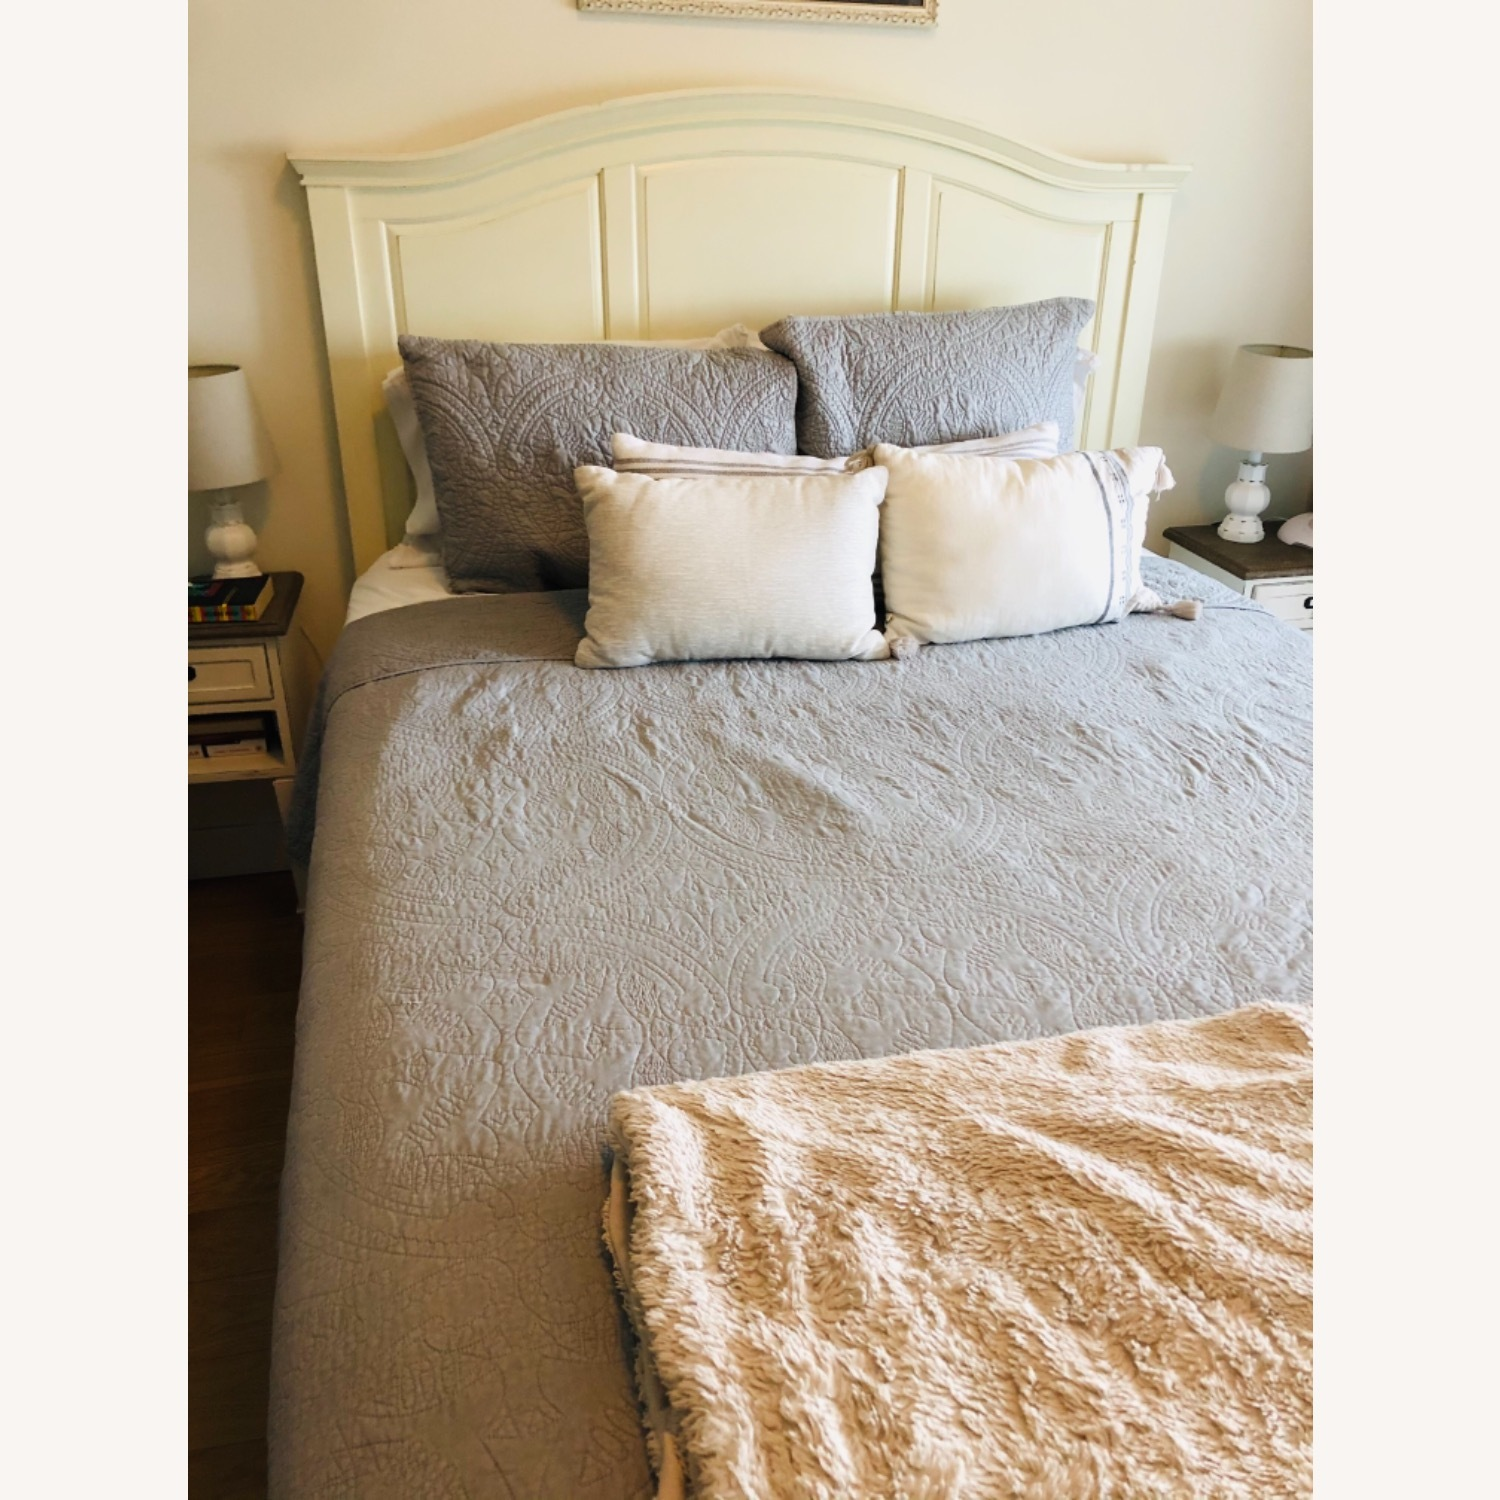 Pottery Barn Queen Sized Headboard (Off-White) - image-2